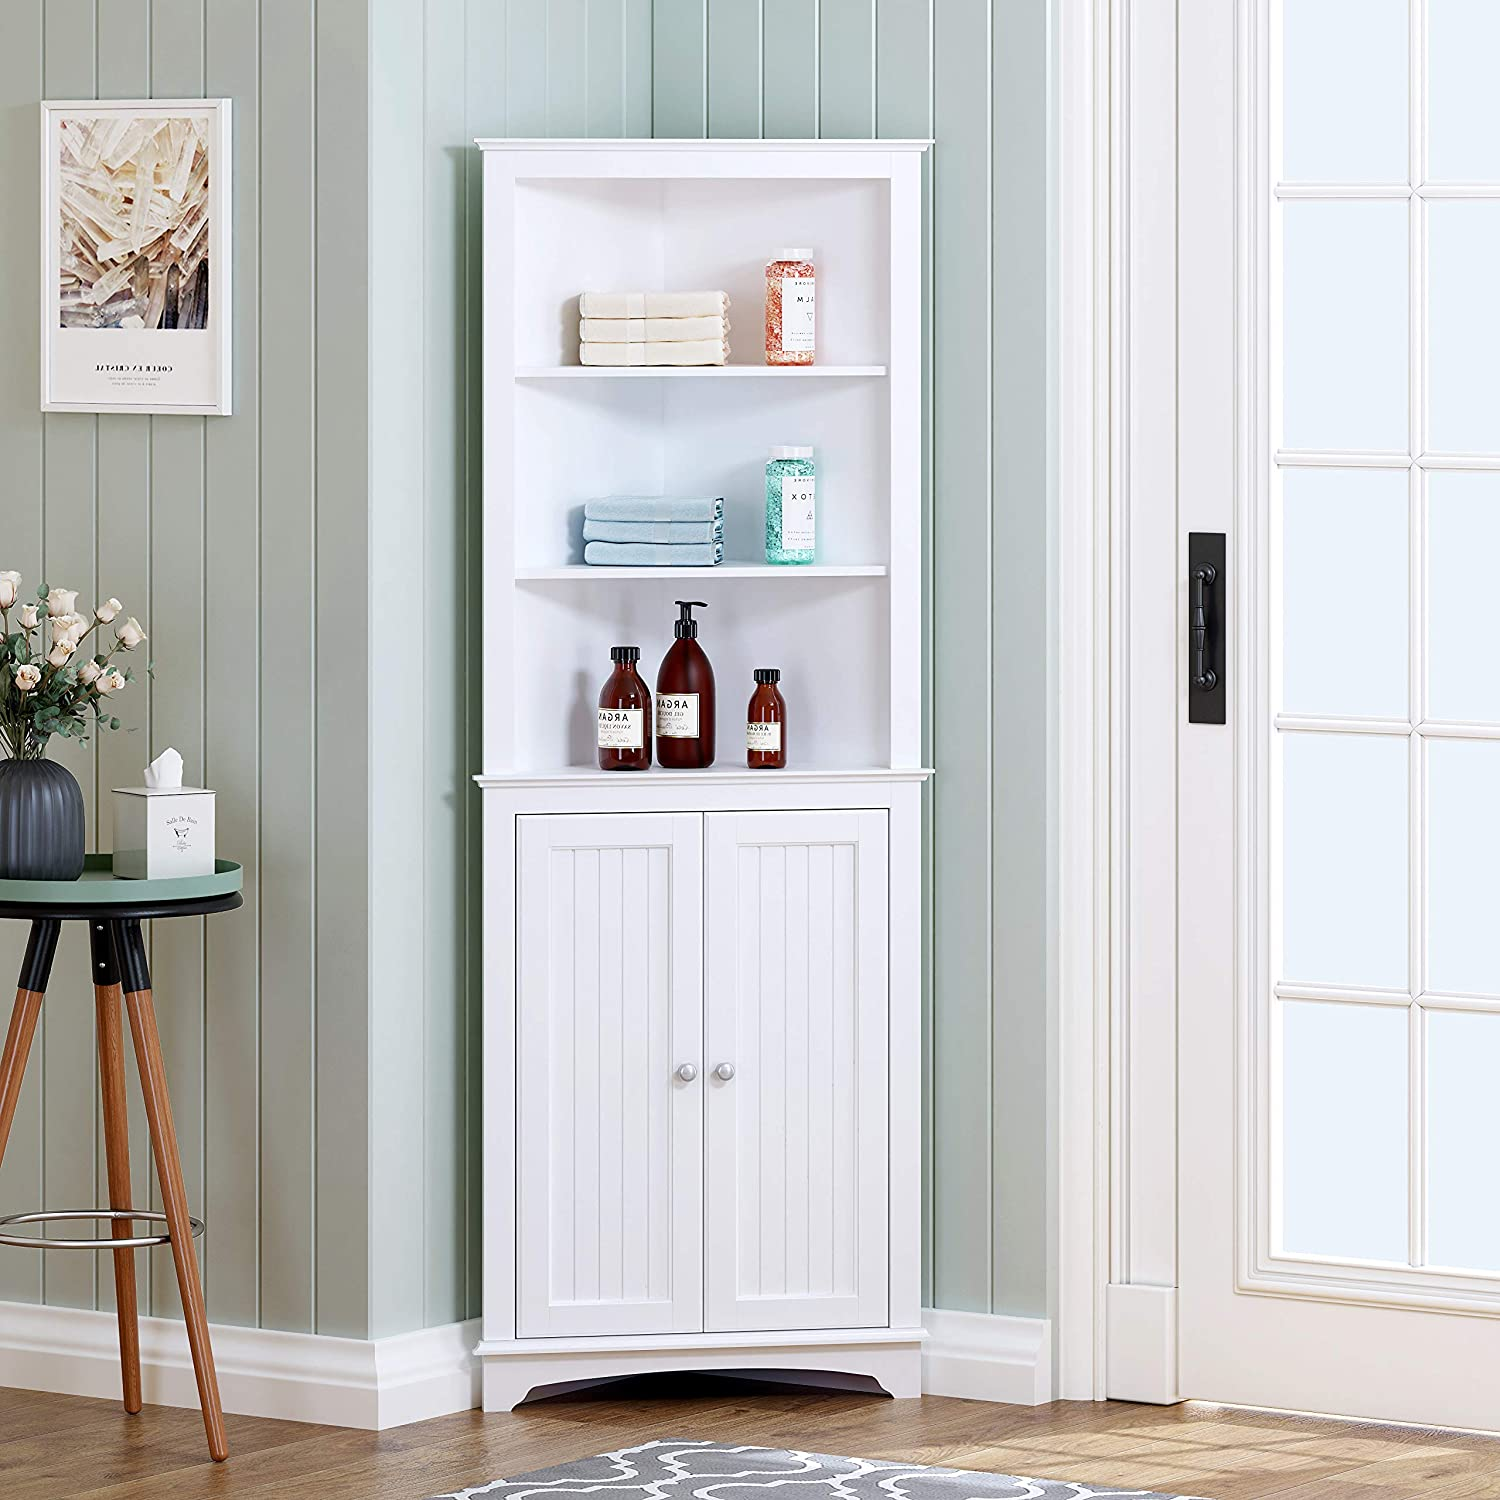 Spirich Home Tall Corner Cabinet with Two Doors and Three Tier Shelves, Free Standing Corner Storage Cabinet for Bathroom, Kitchen, Living Room or Bedroom, White